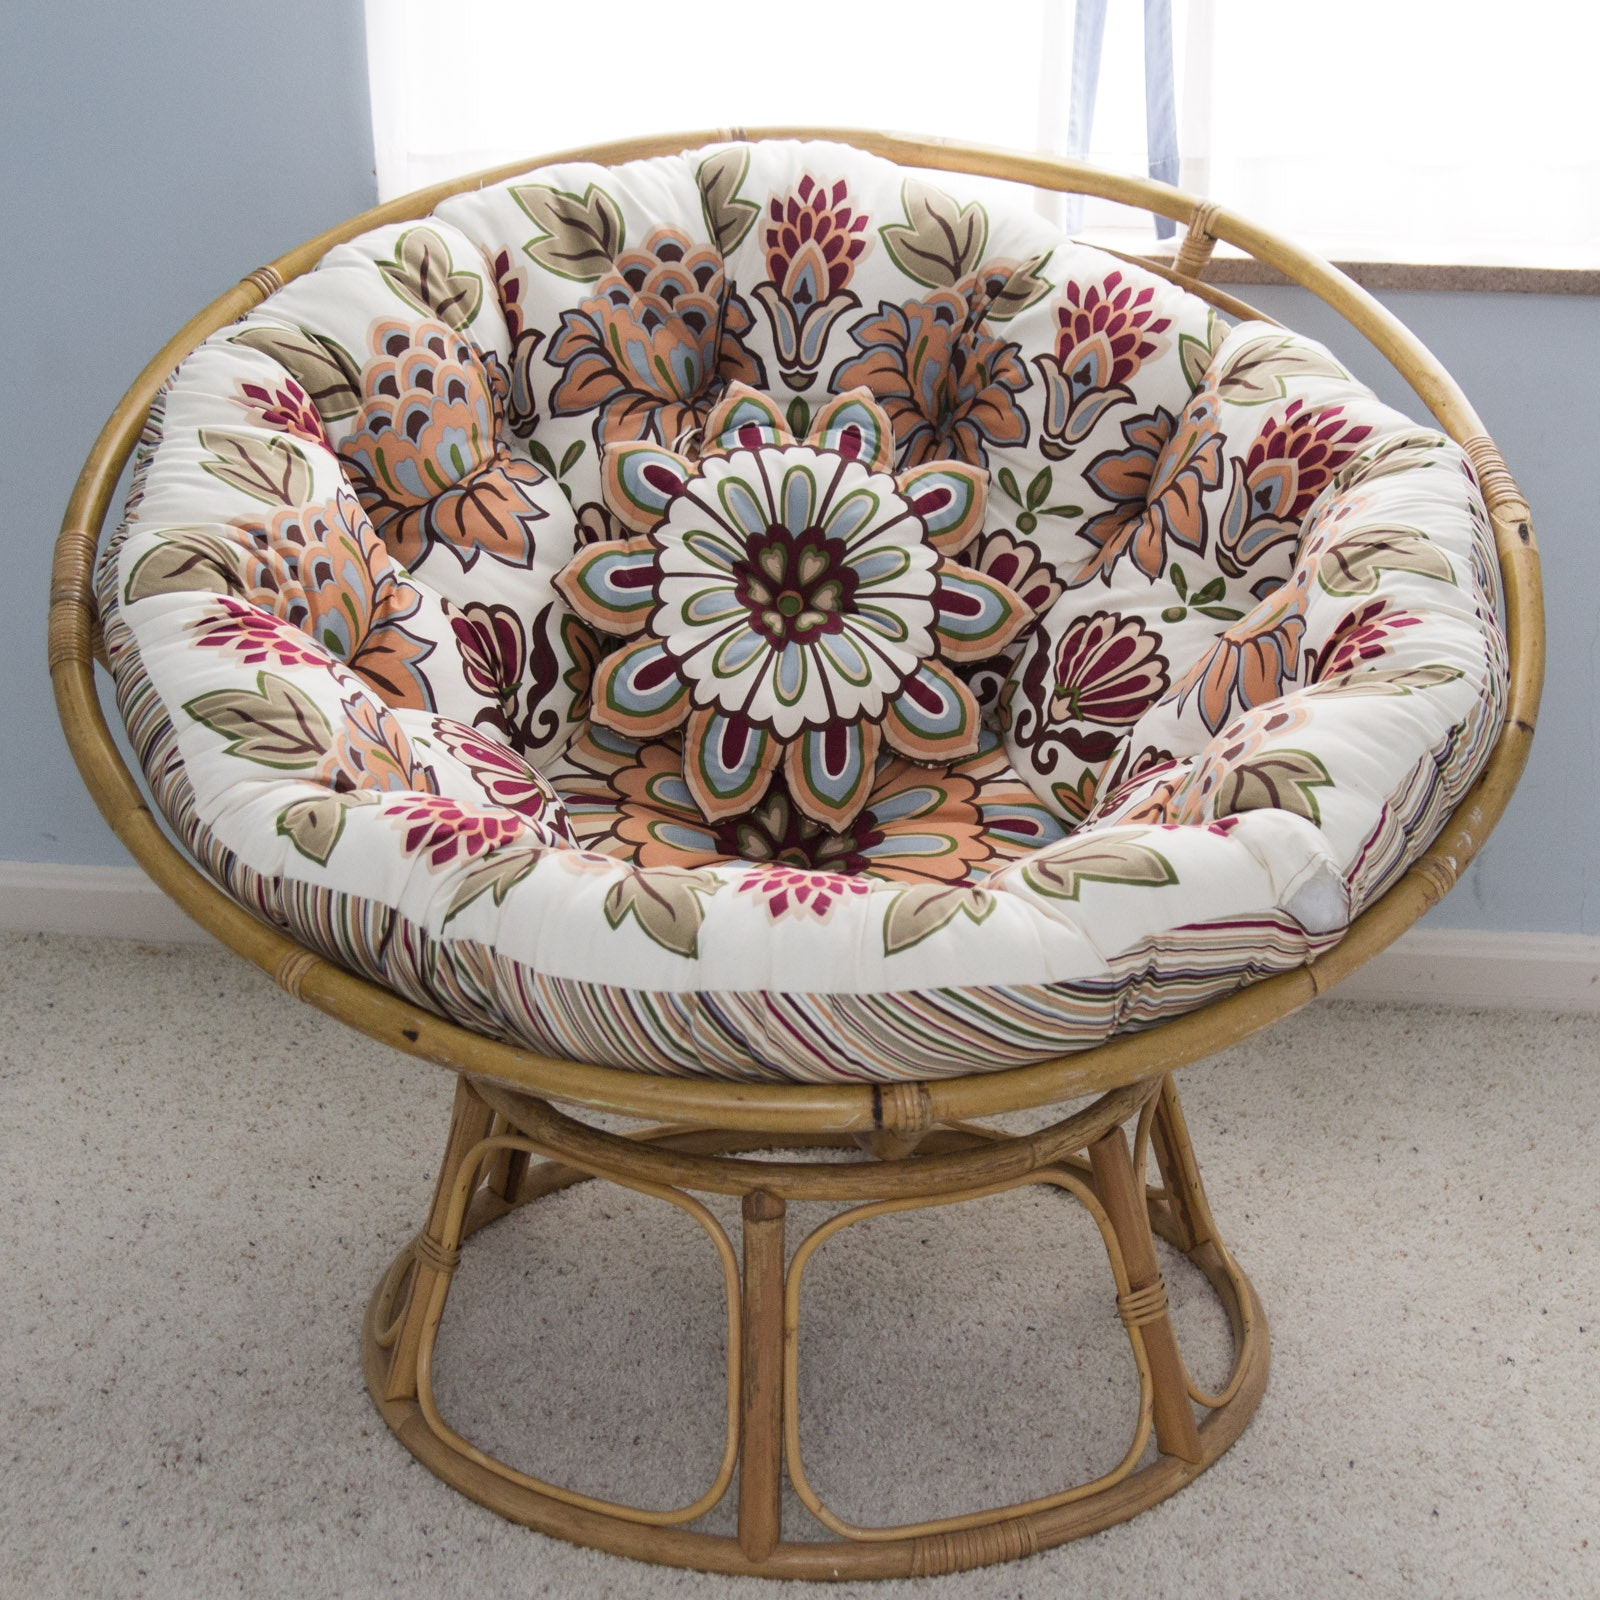 Marvelous Vintage Bamboo Moon Chair With Cushion ... Images